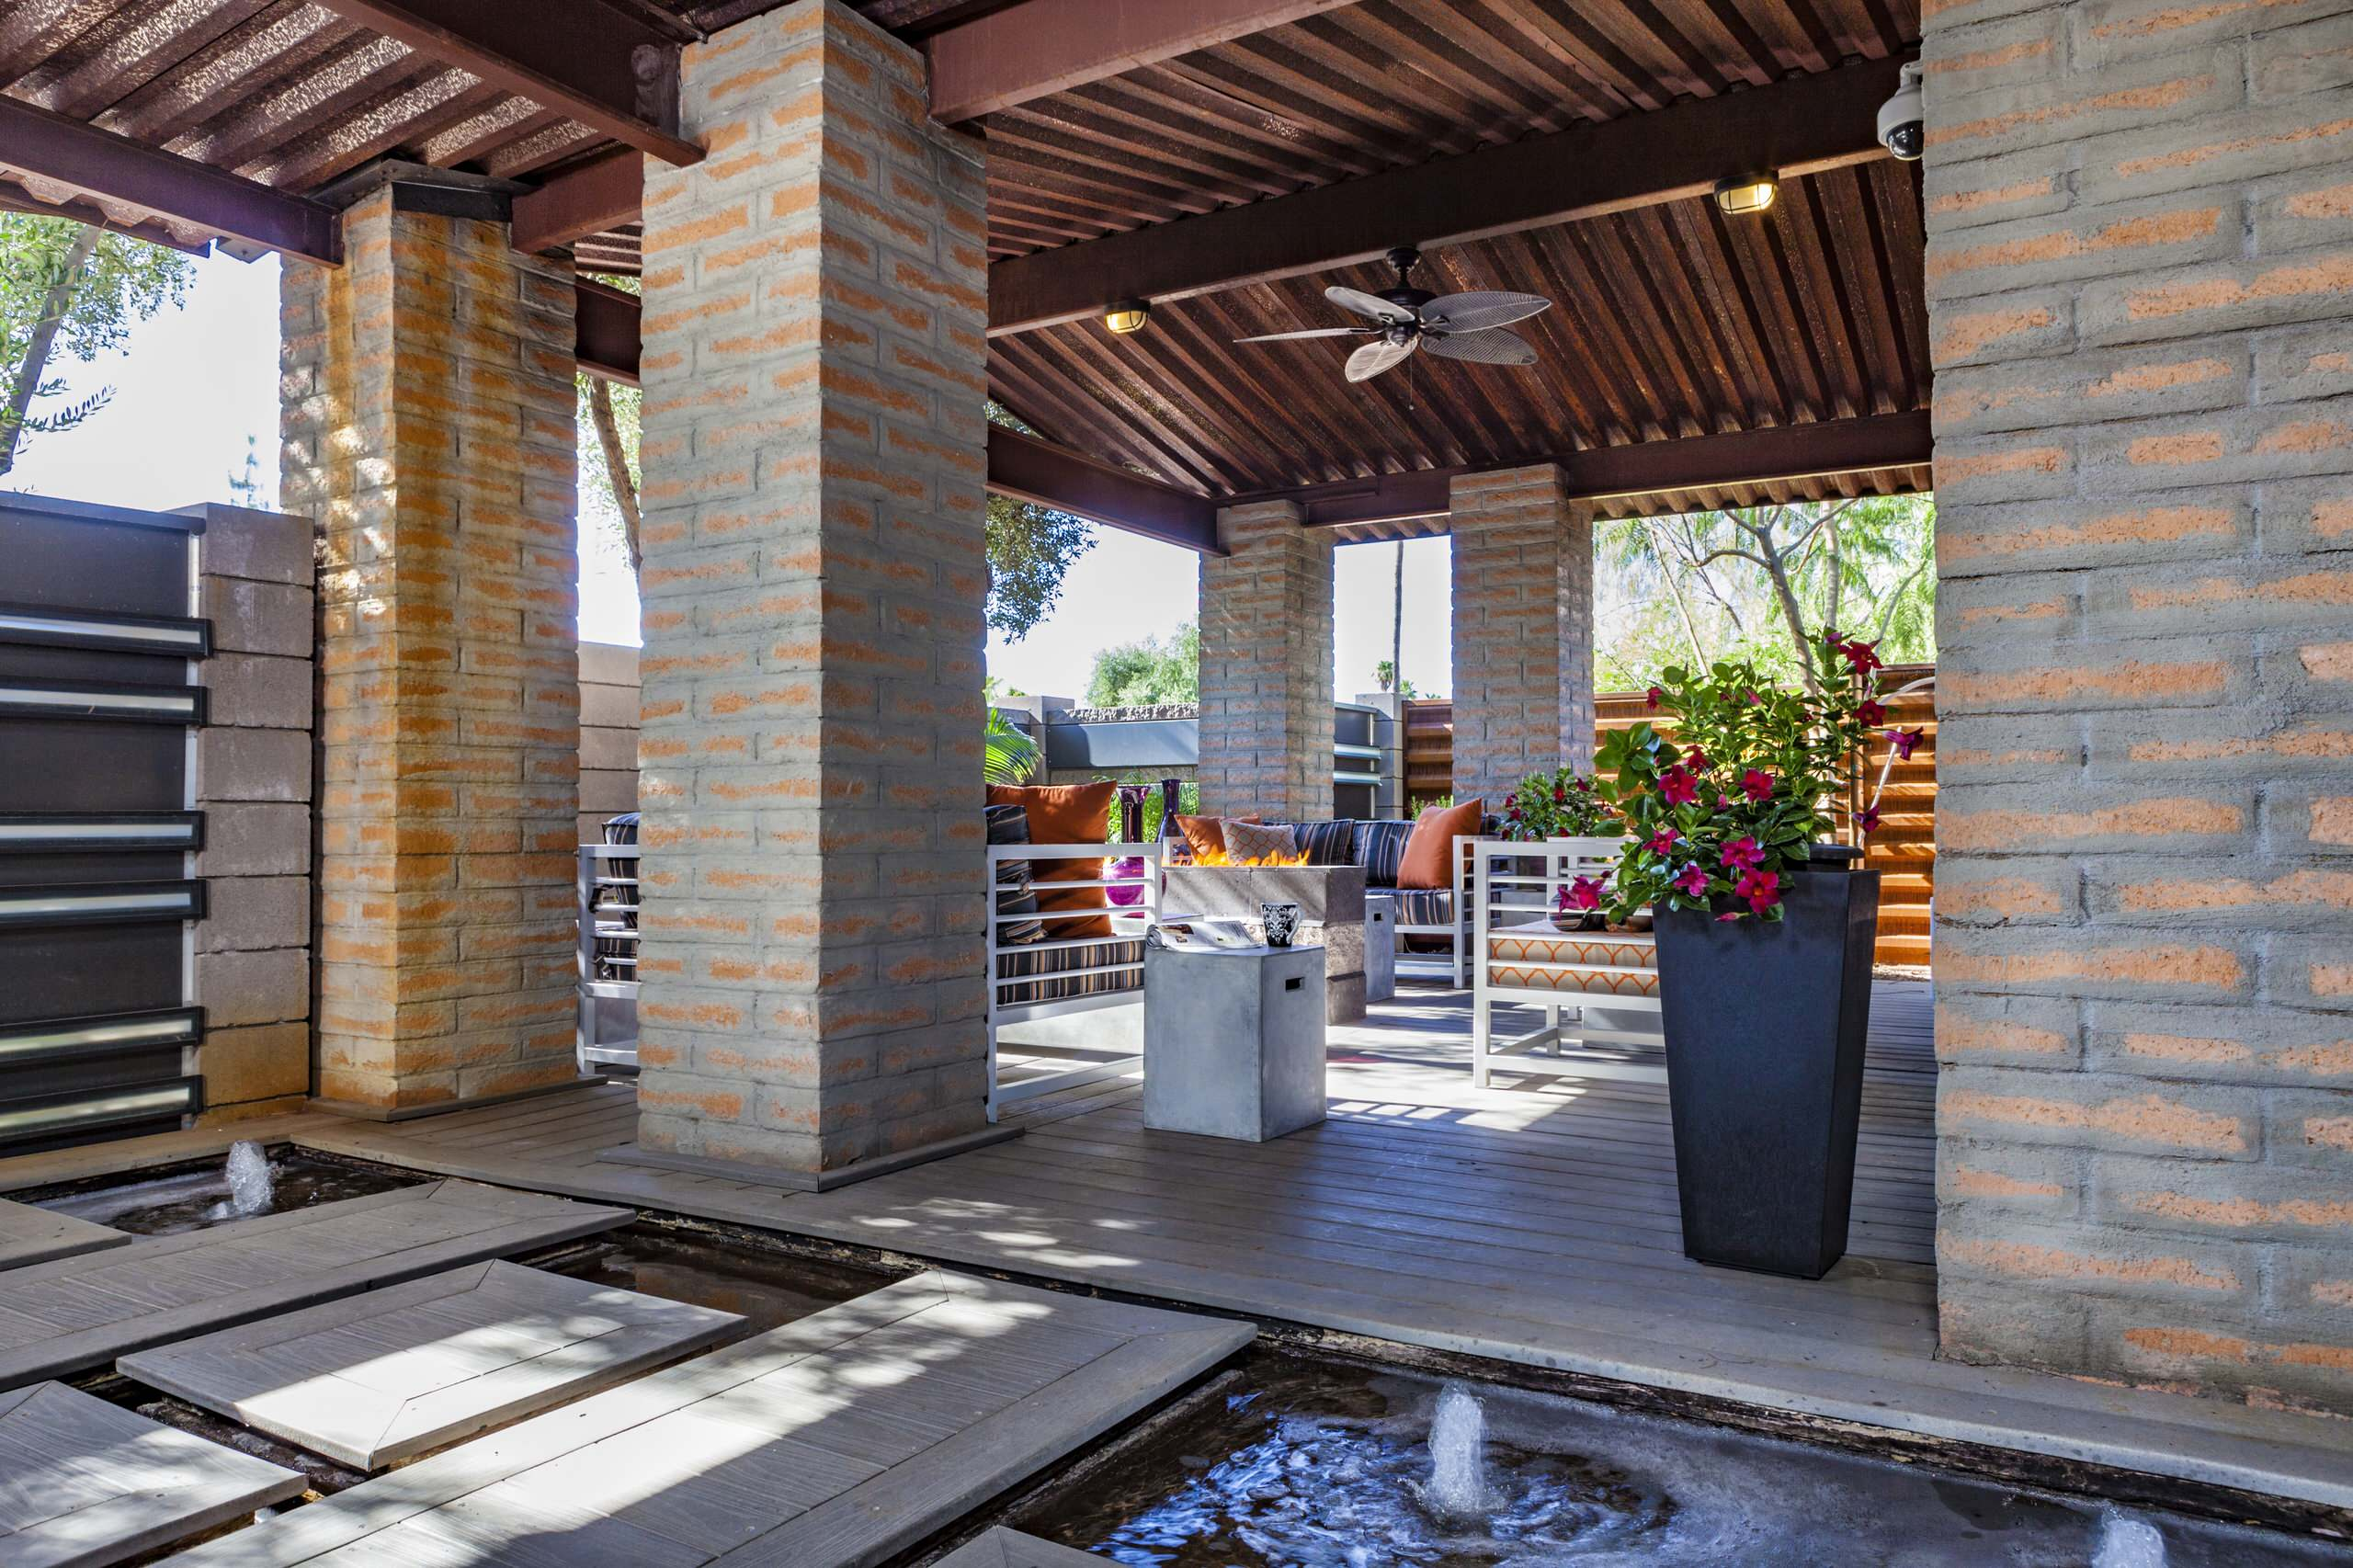 Inspiration for a mid-sized industrial courtyard patio remodel in Phoenix with decking and a roof extension